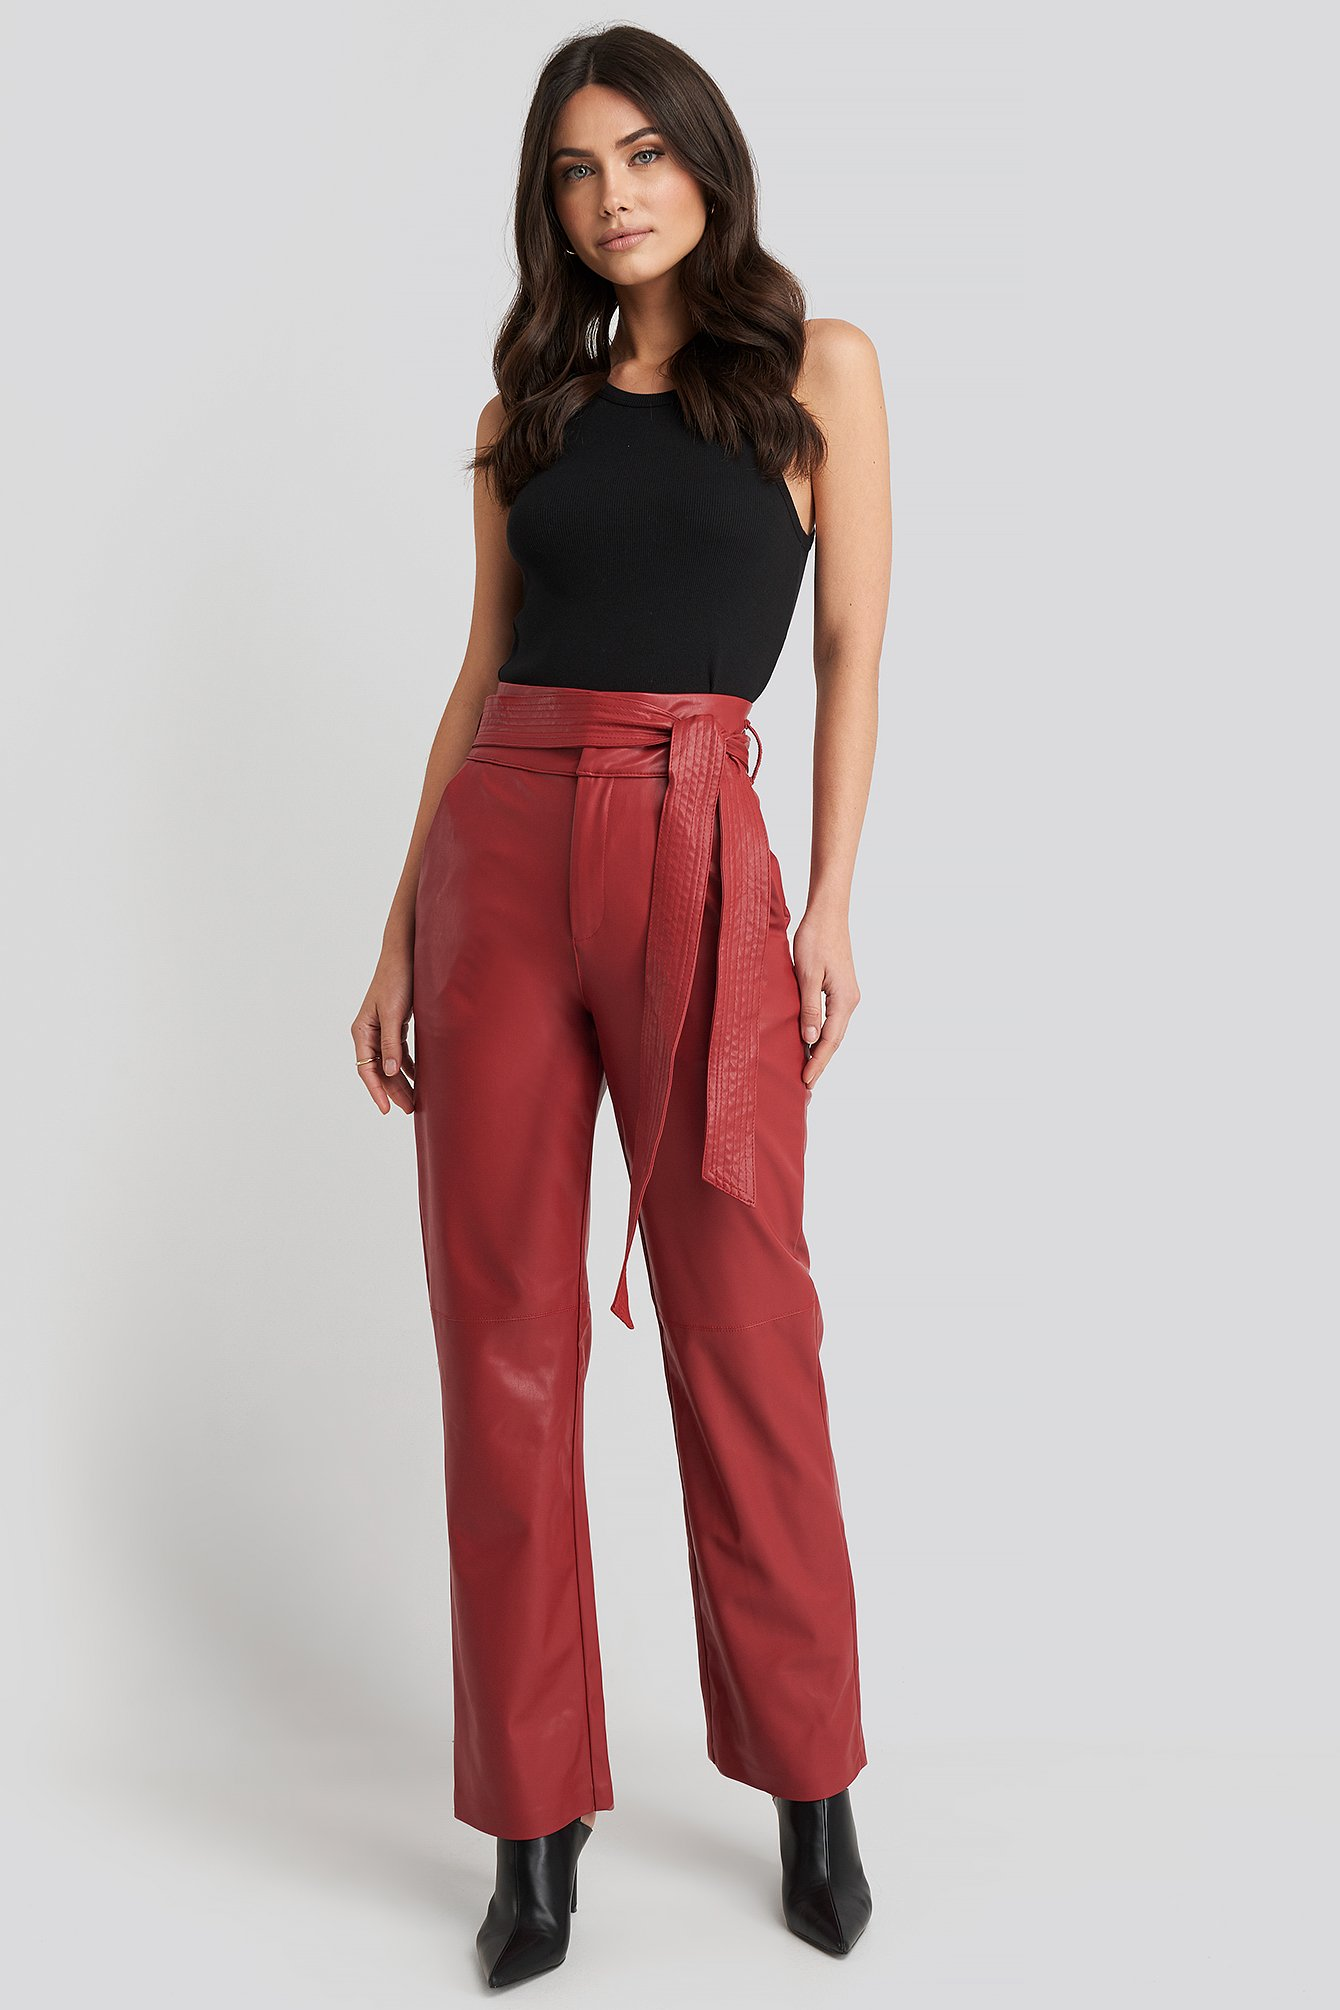 na-kd party -  Faux Leather Belted Straight Leg Pants - Red